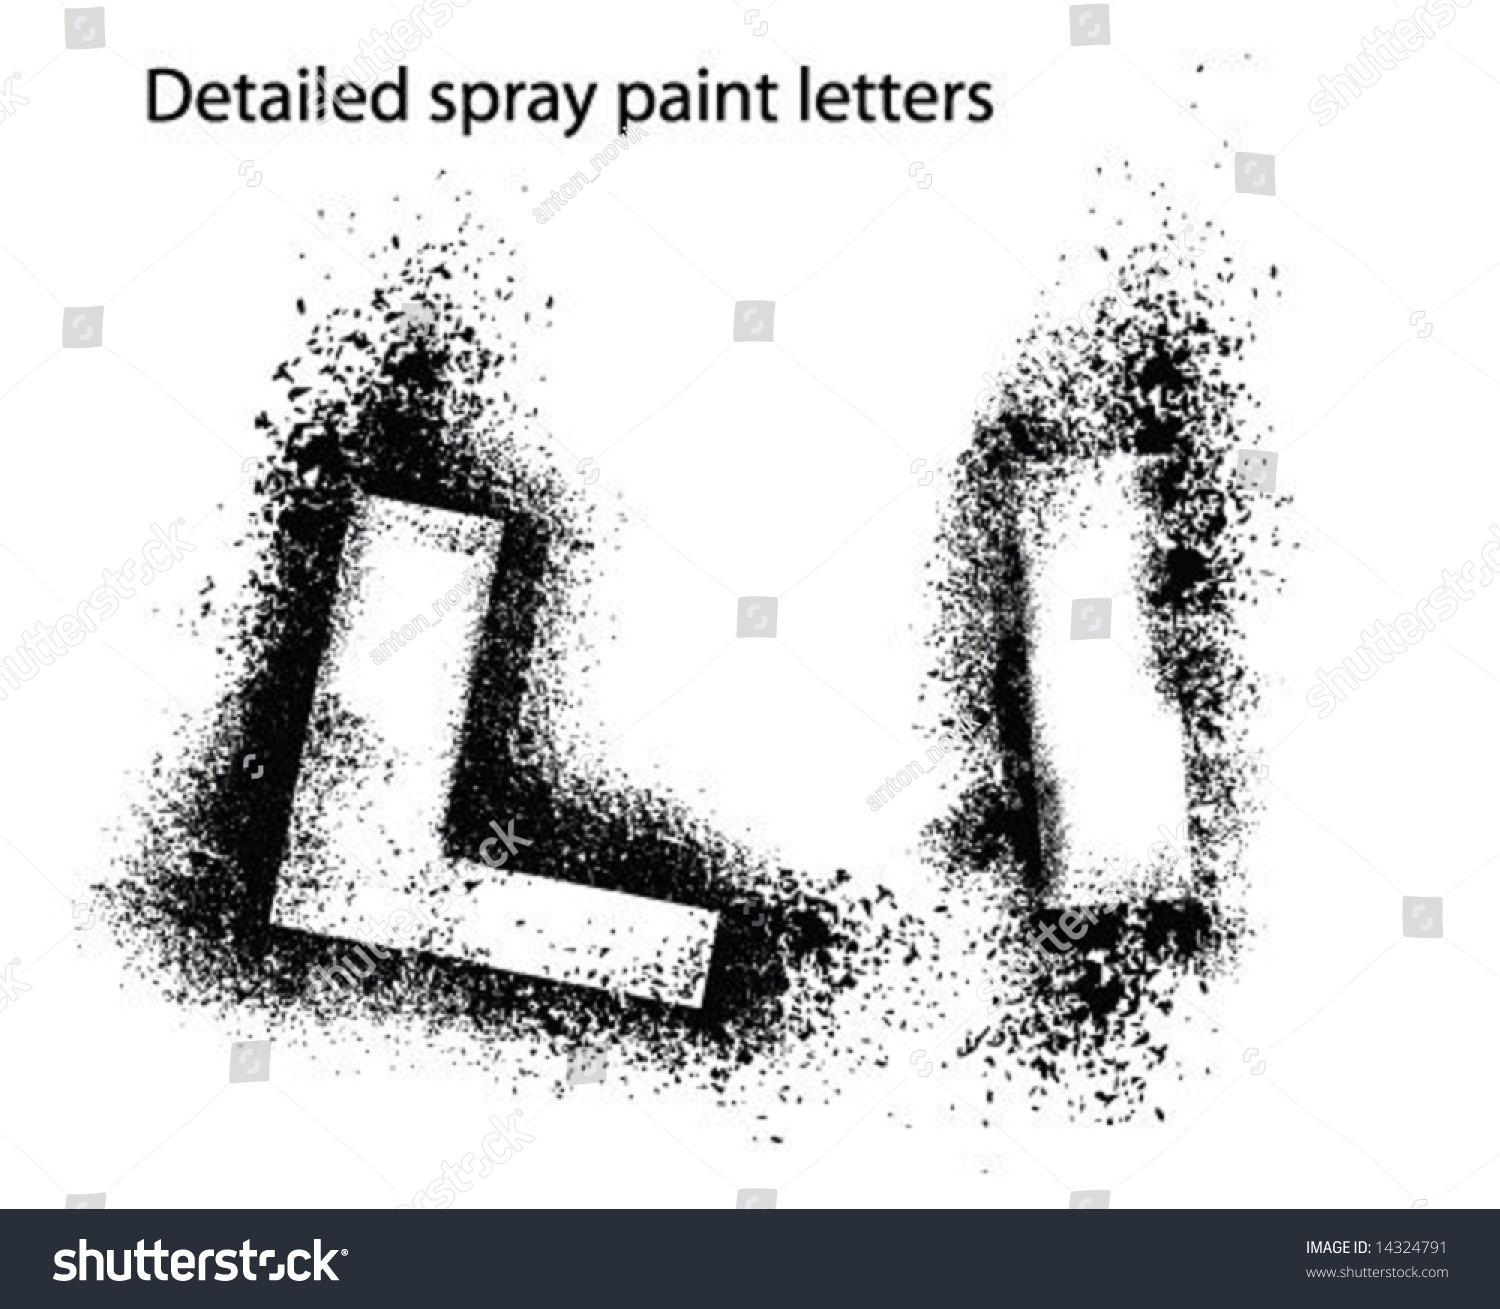 spray paint font stencil letters in spray paint stock photos images